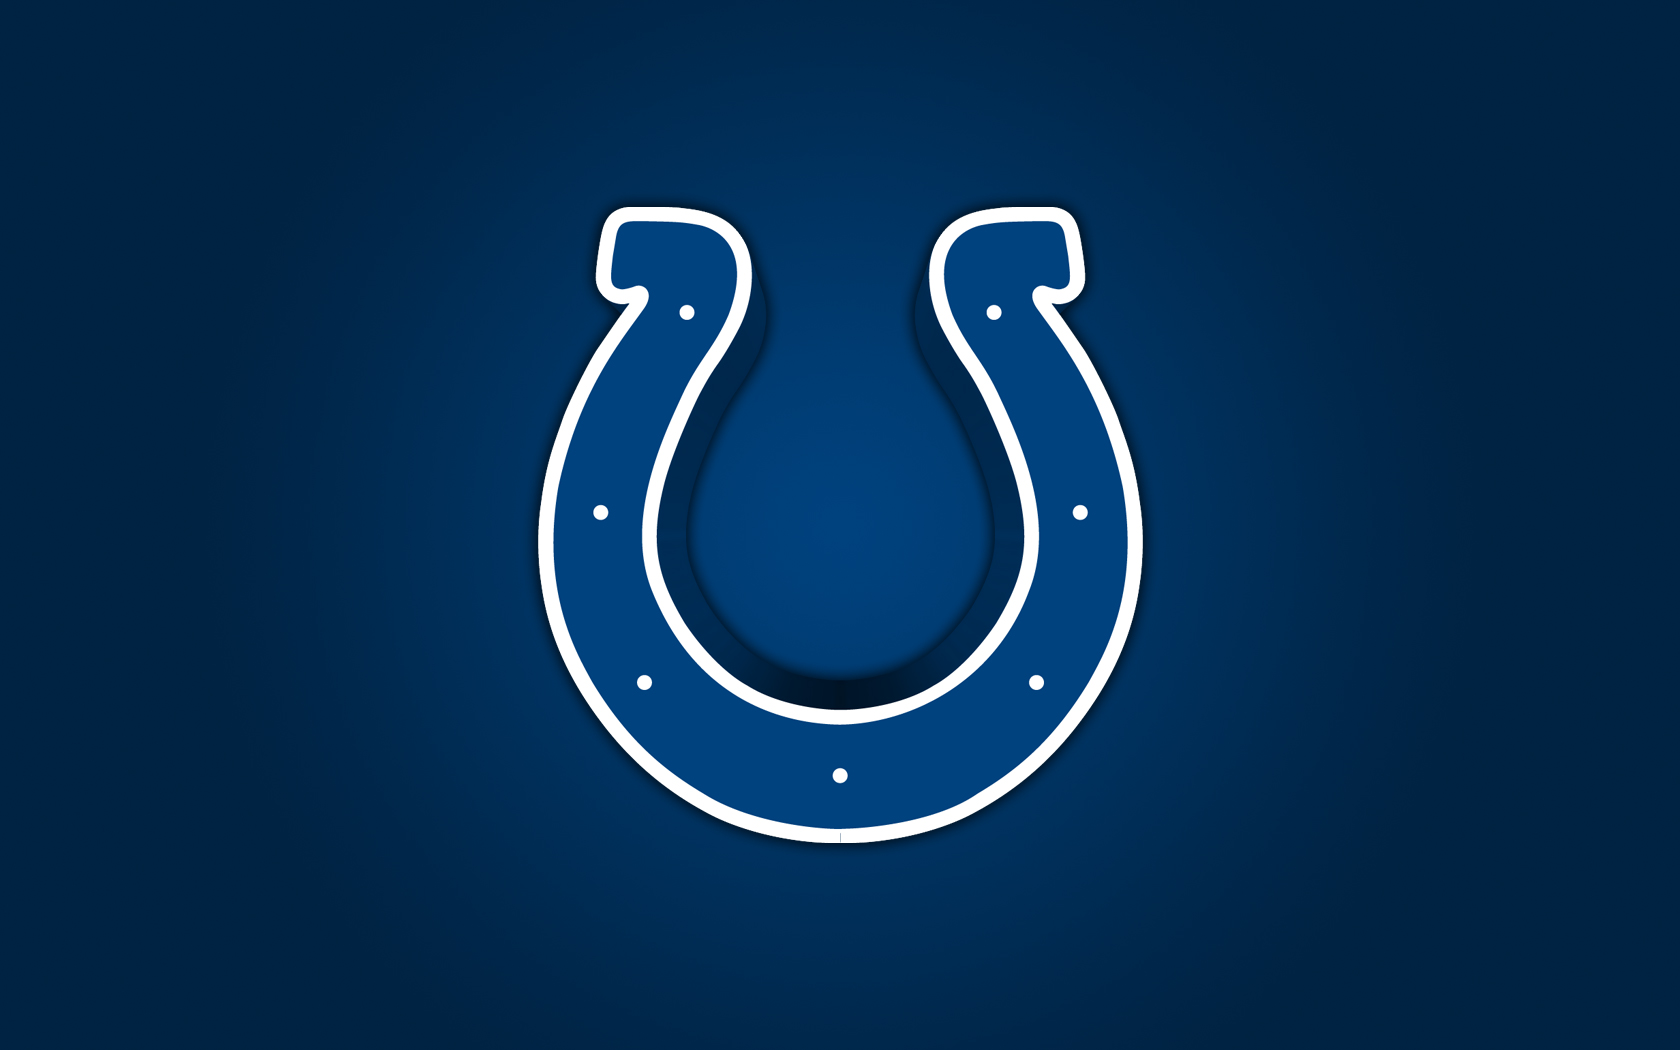 Indianapolis Colts Computer Wallpapers, Desktop Backgrounds 1680x1050 ...